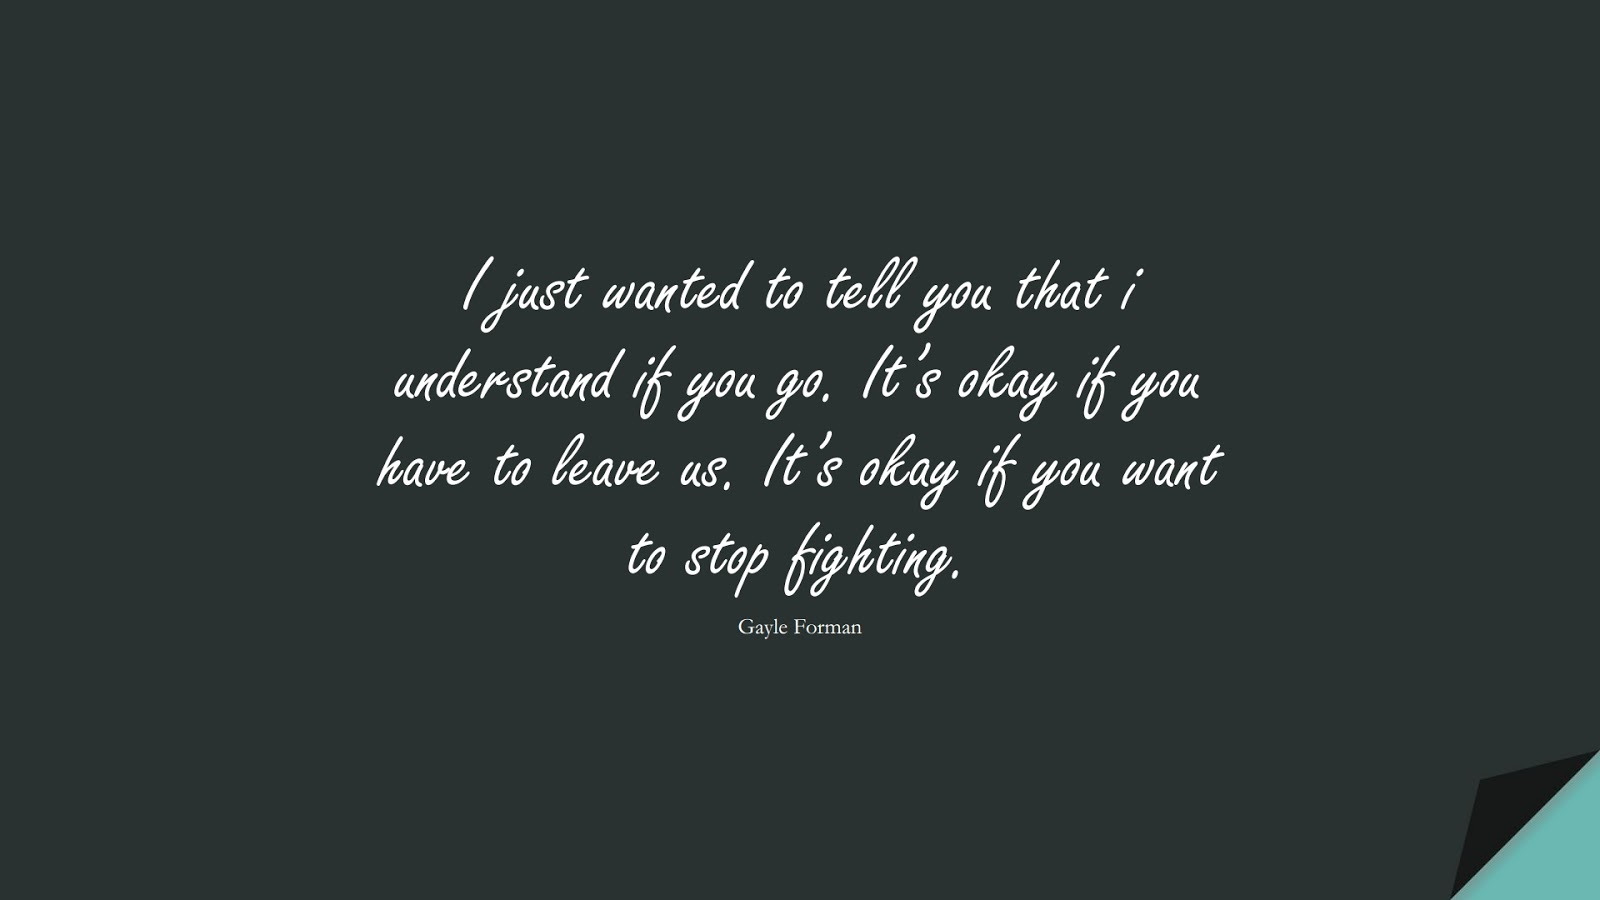 I just wanted to tell you that i understand if you go. It's okay if you have to leave us. It's okay if you want to stop fighting. (Gayle Forman);  #SadLoveQuotes